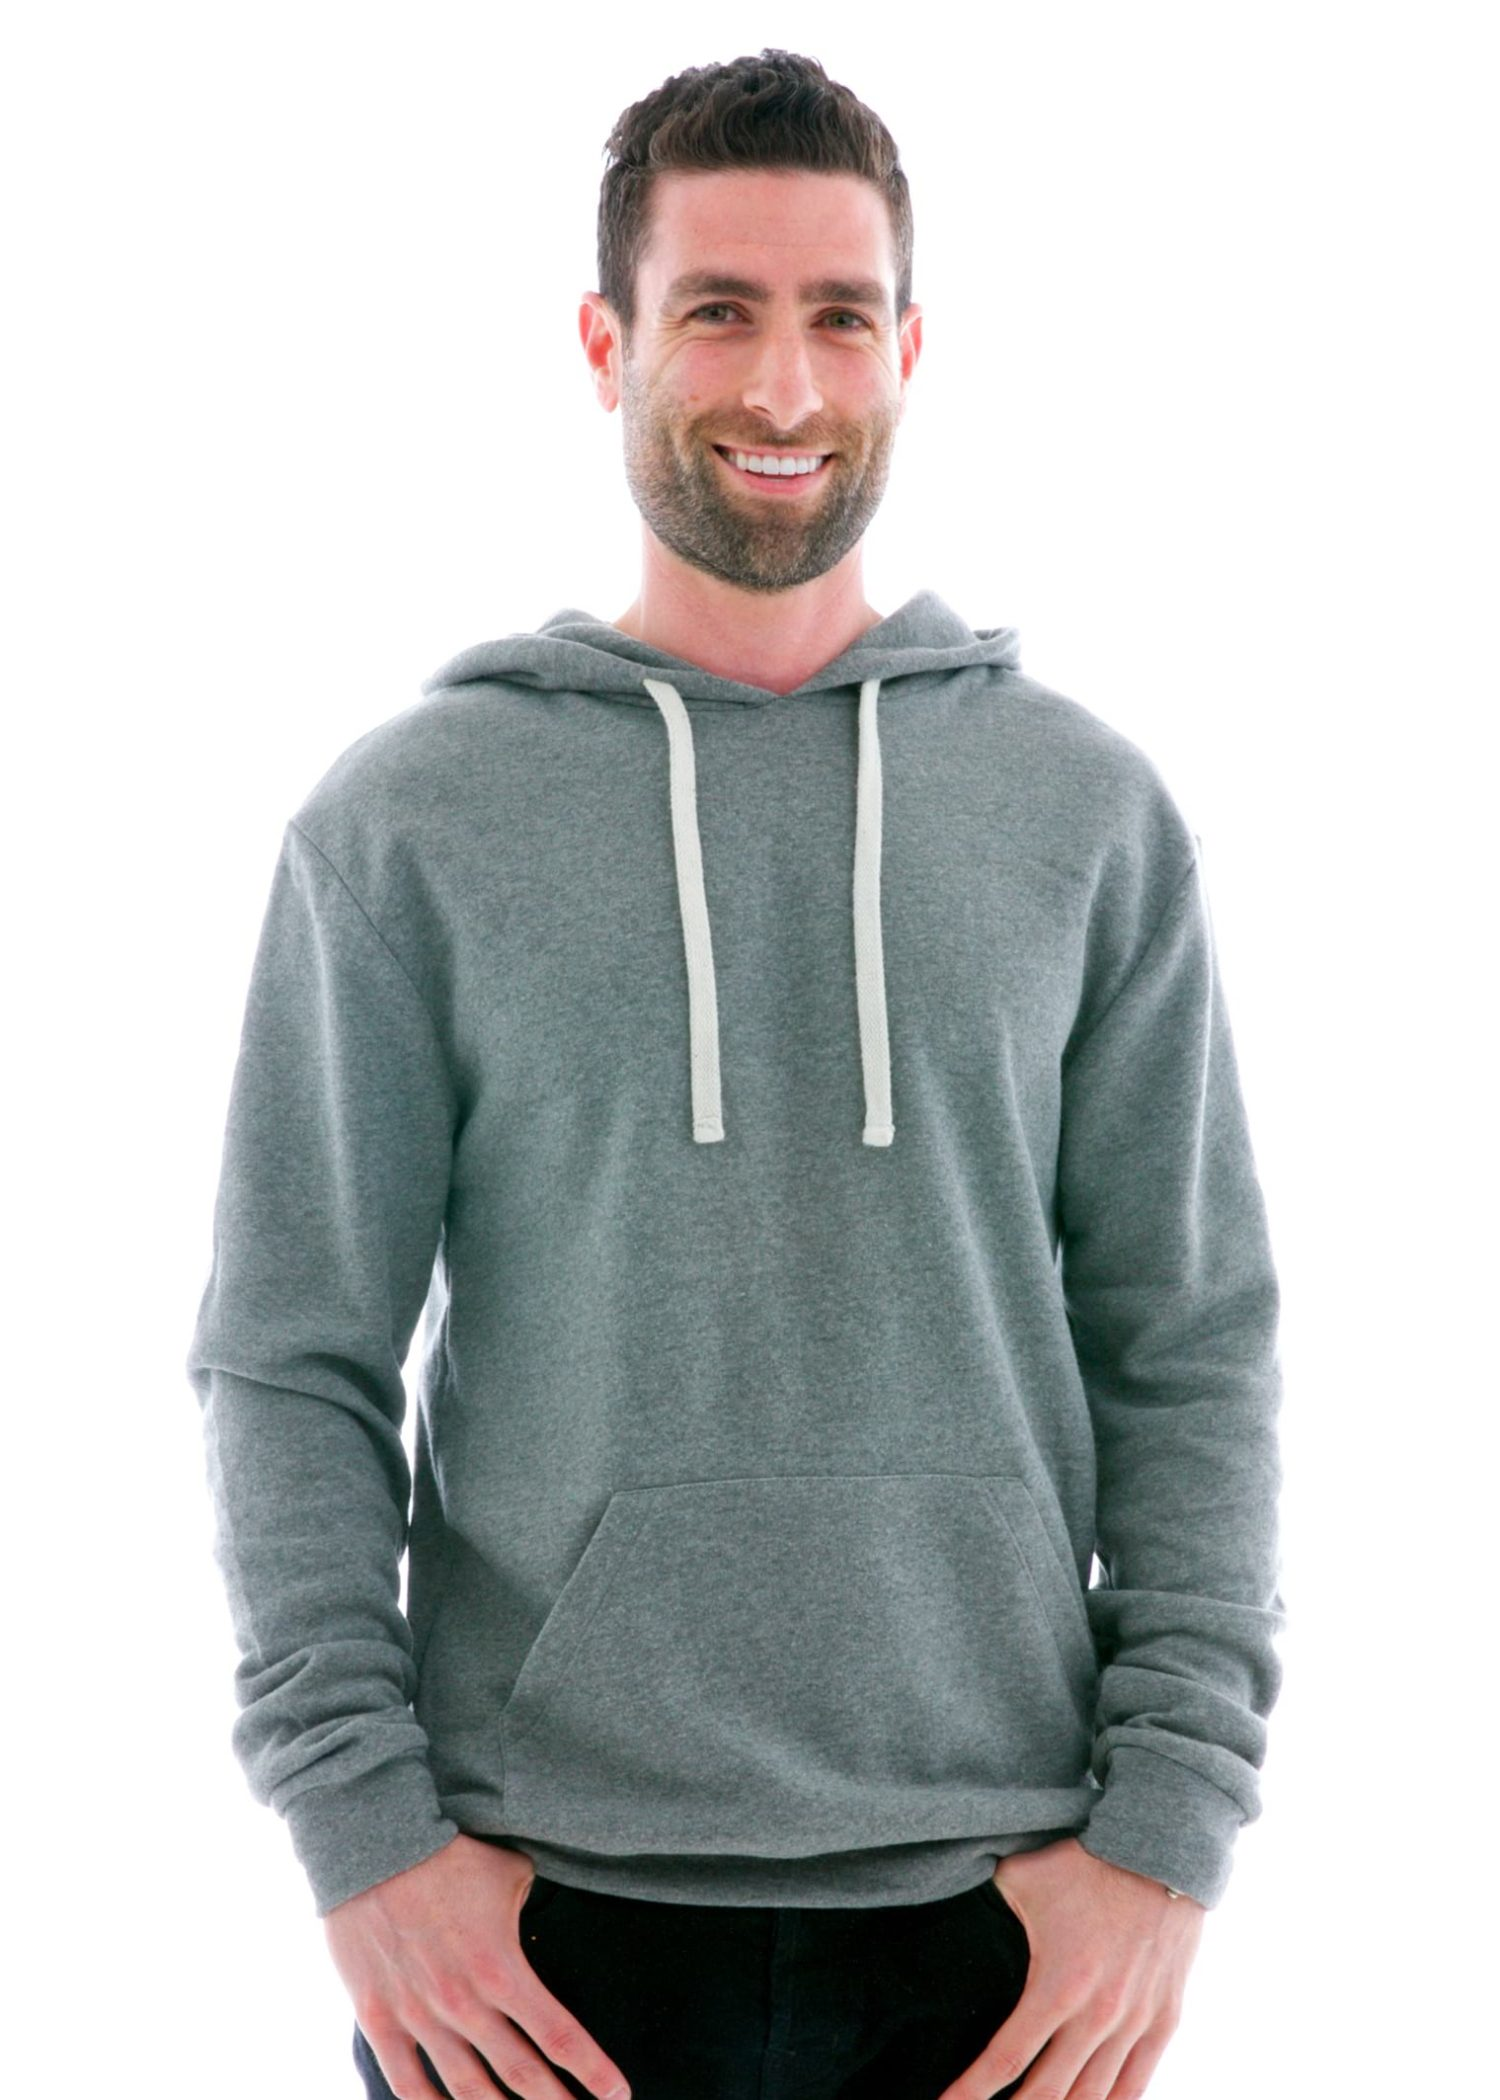 Plush Pullover Hoodie Front View